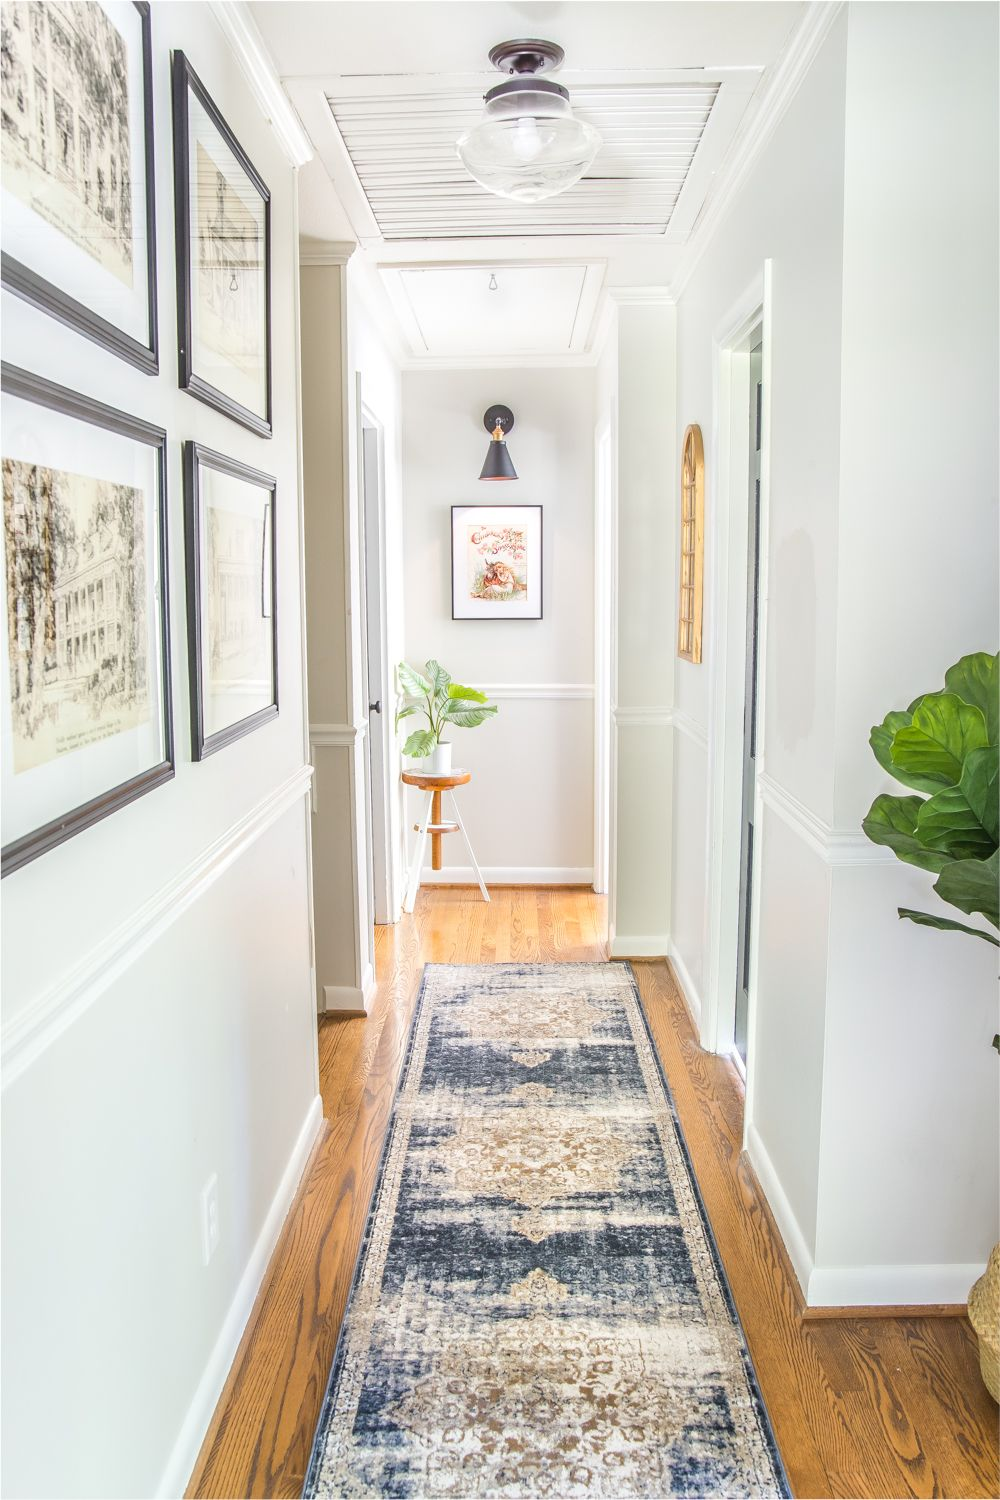 6 Tips To Decorate A Boring Hallway Narrow Hallway Decorating Upstairs Hallway Hallway Decorating